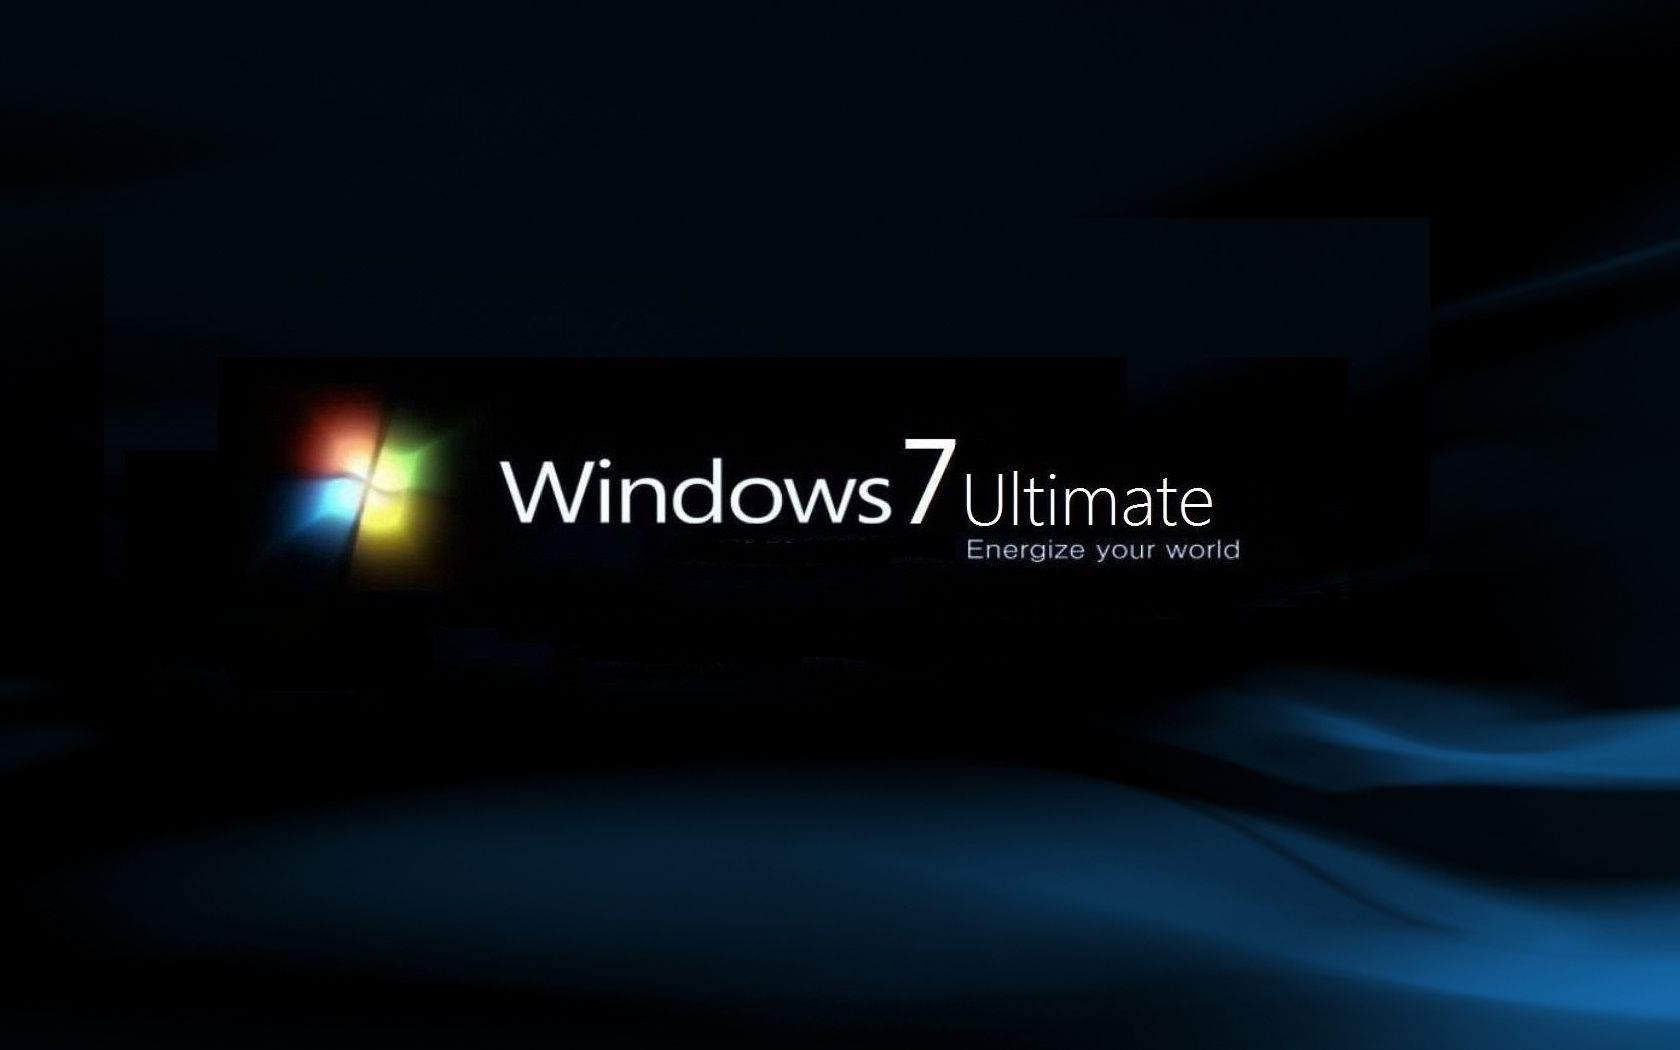 Wallpaper HD Windows 7 Ultimate